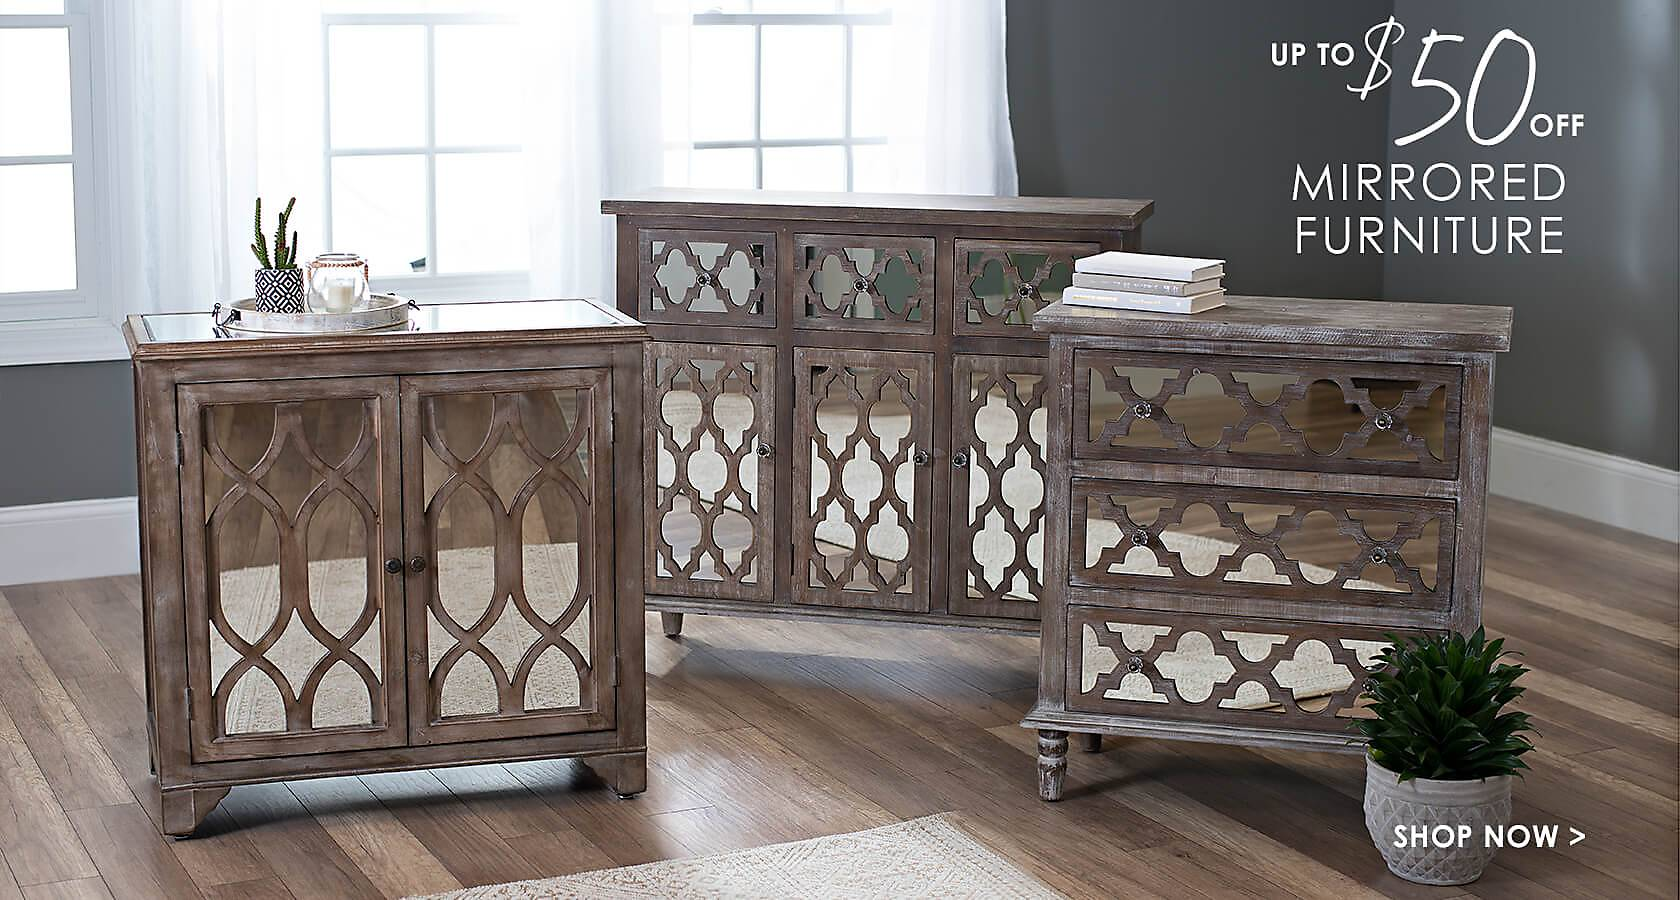 up to $50 off Mirrored Furniture - Shop Now